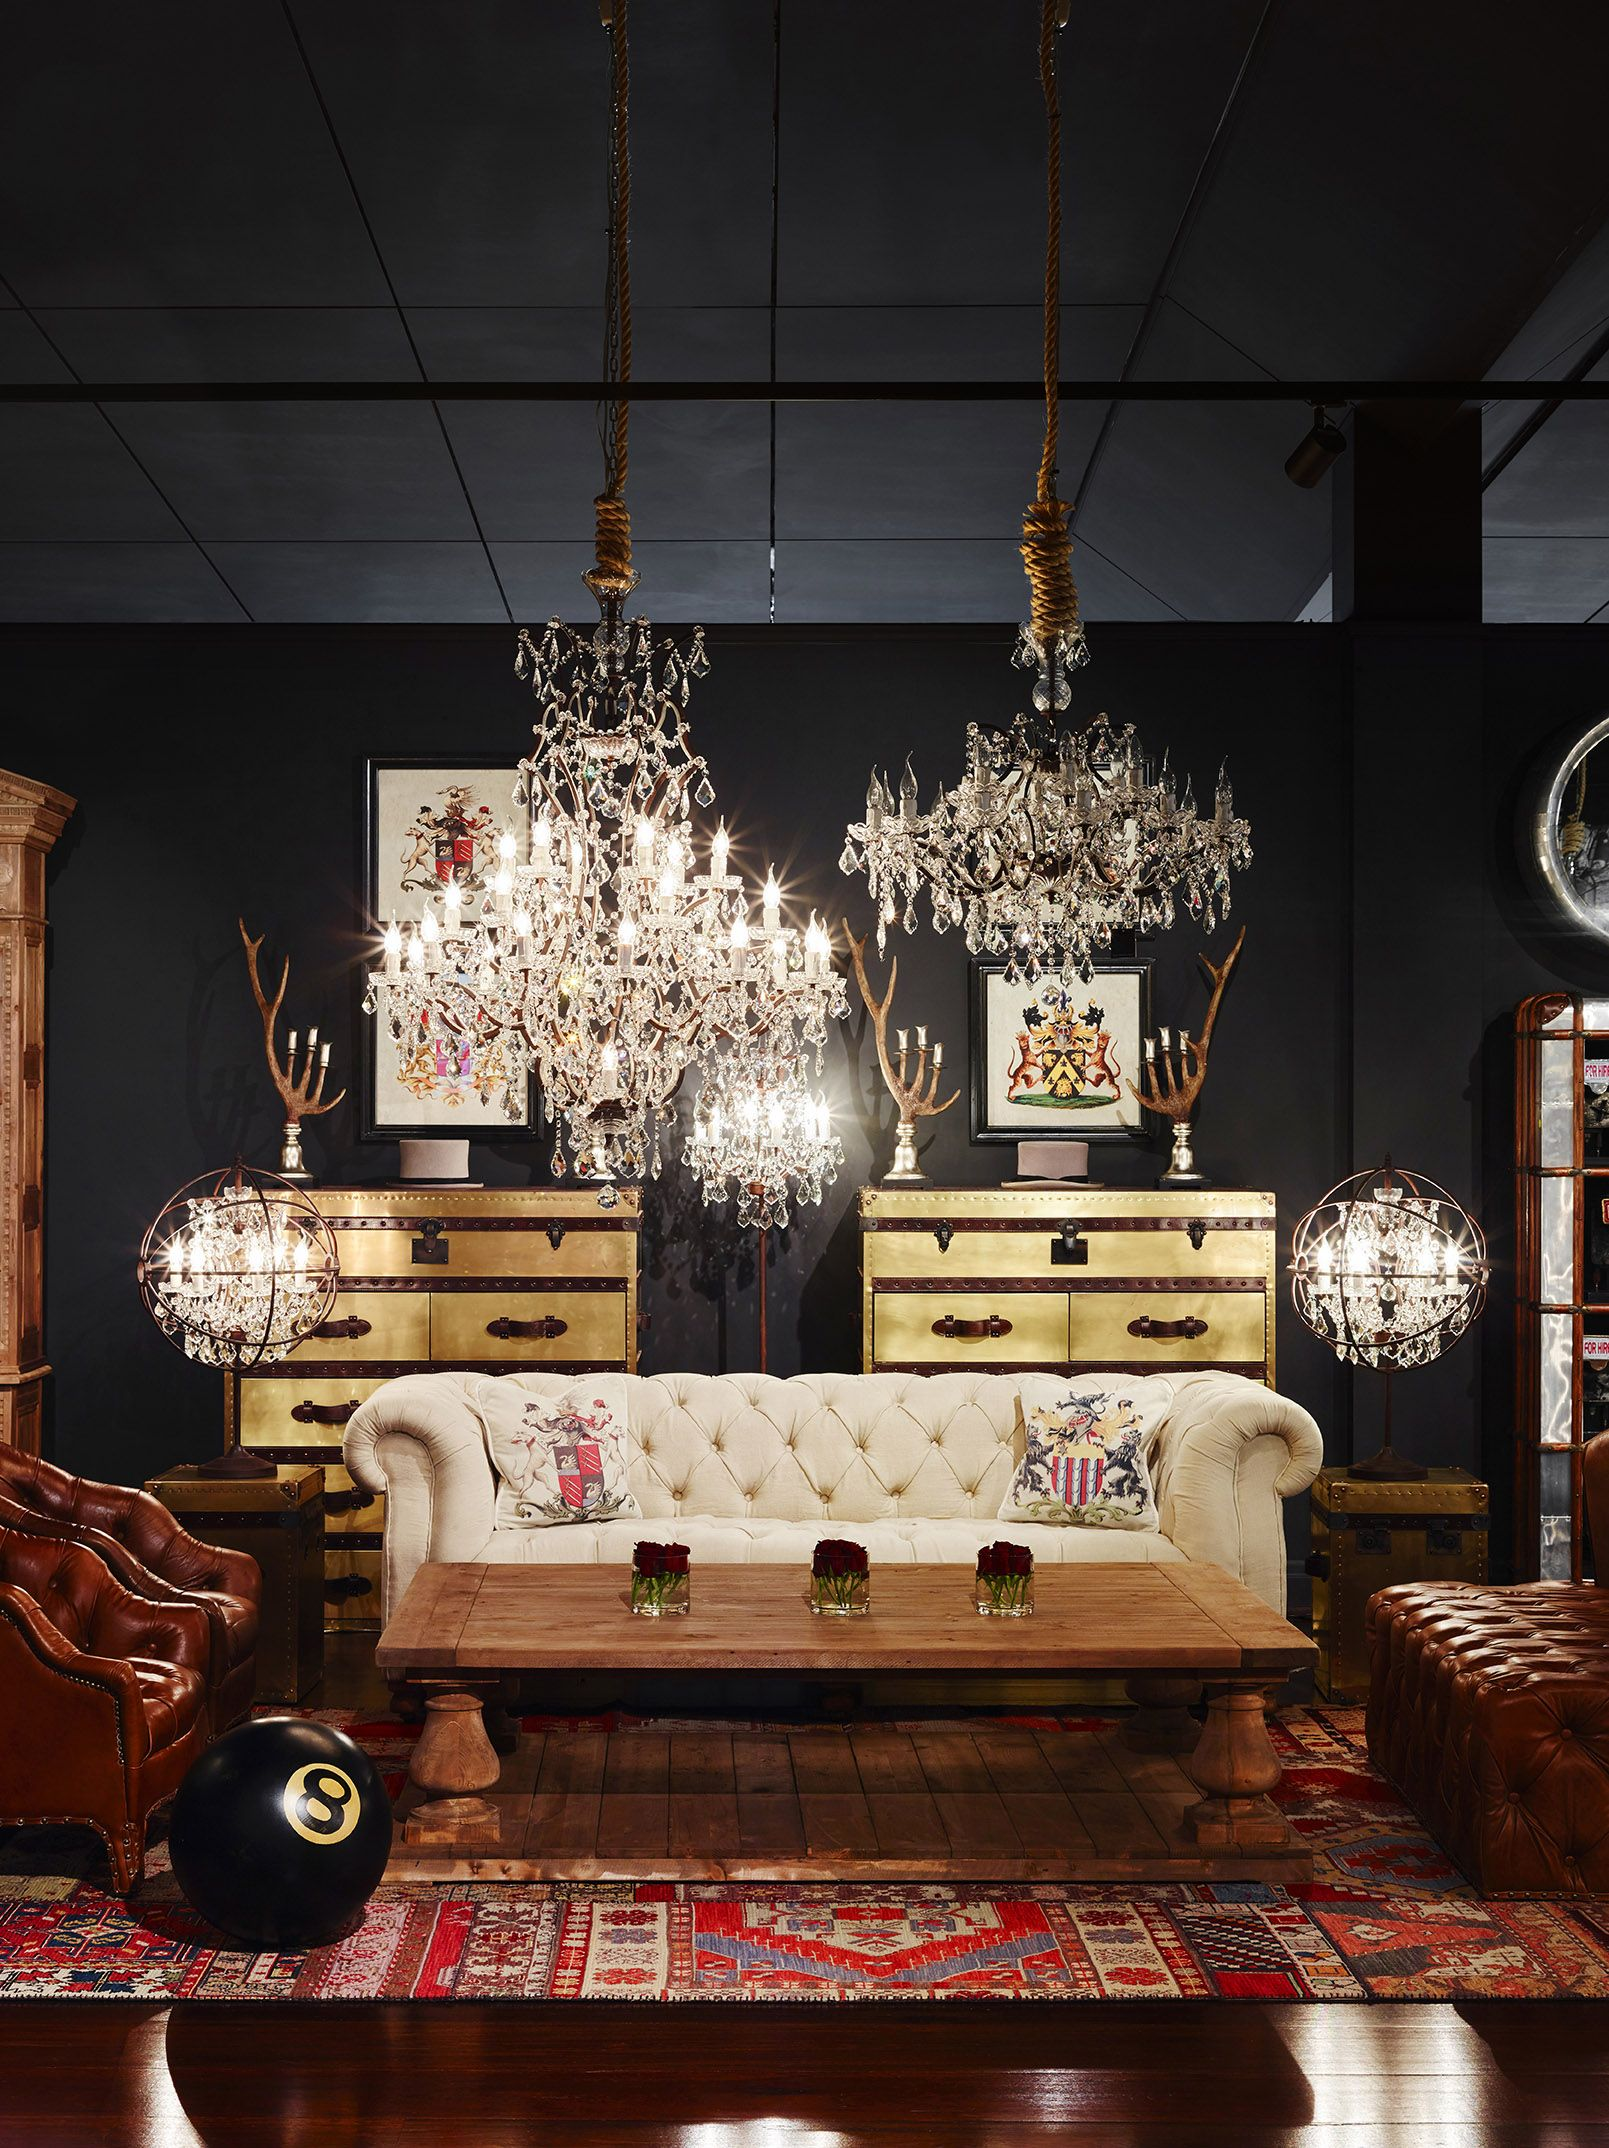 Lighting Shops Brisbane Coco Republic Brisbane Timothy Oulton 2015 Architecture Shops